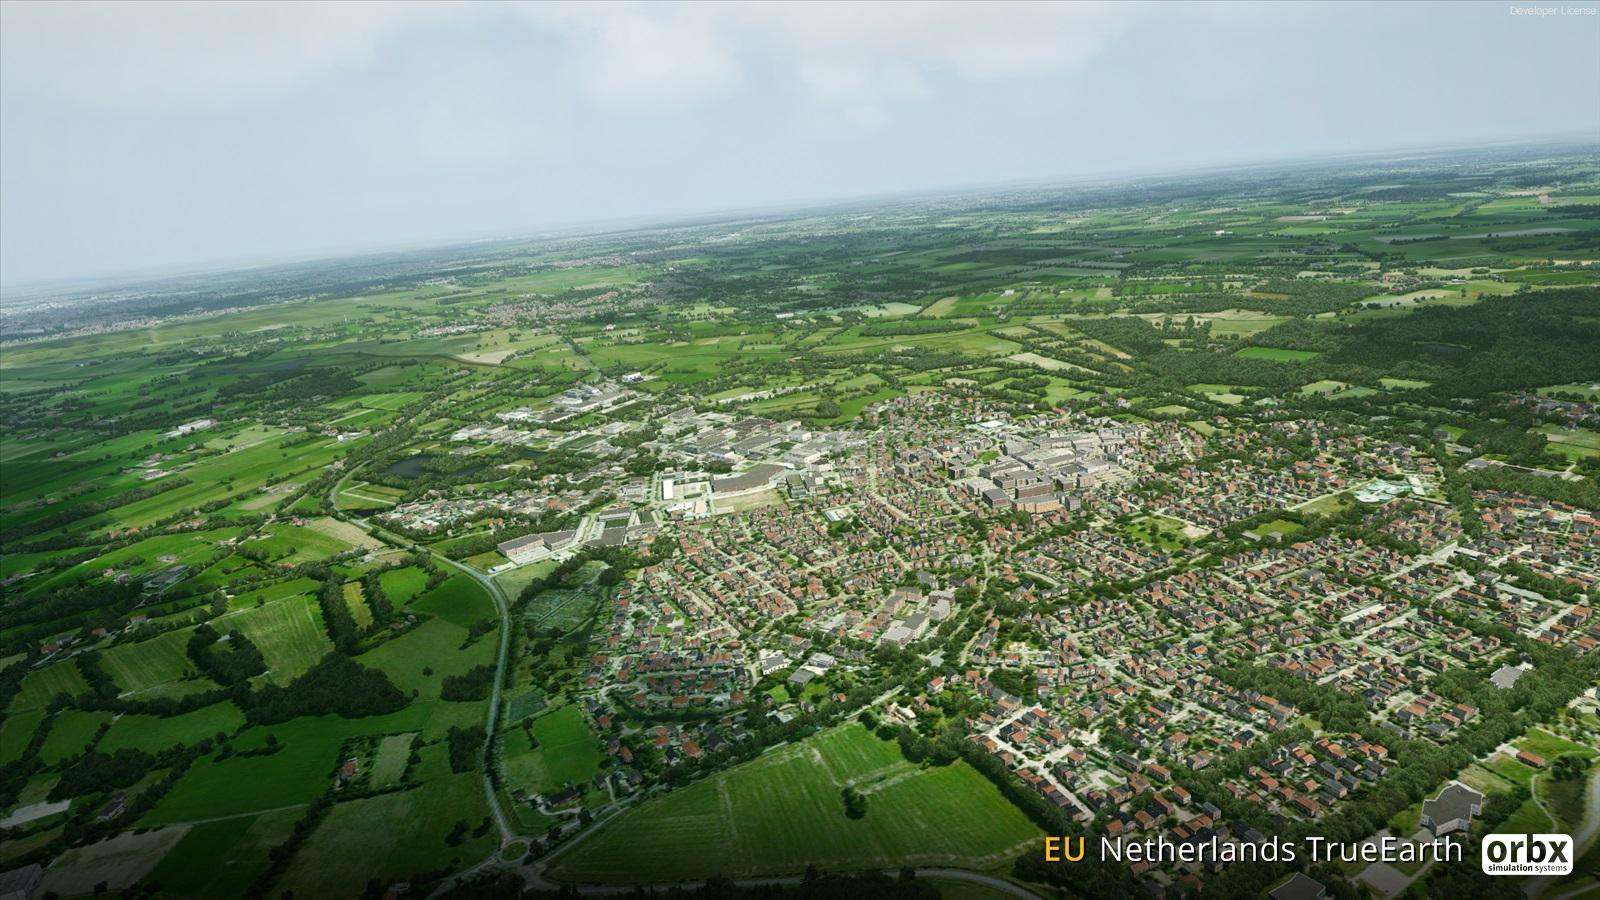 Orbx Netherlands TrueEarth     will come for XP too! - General X